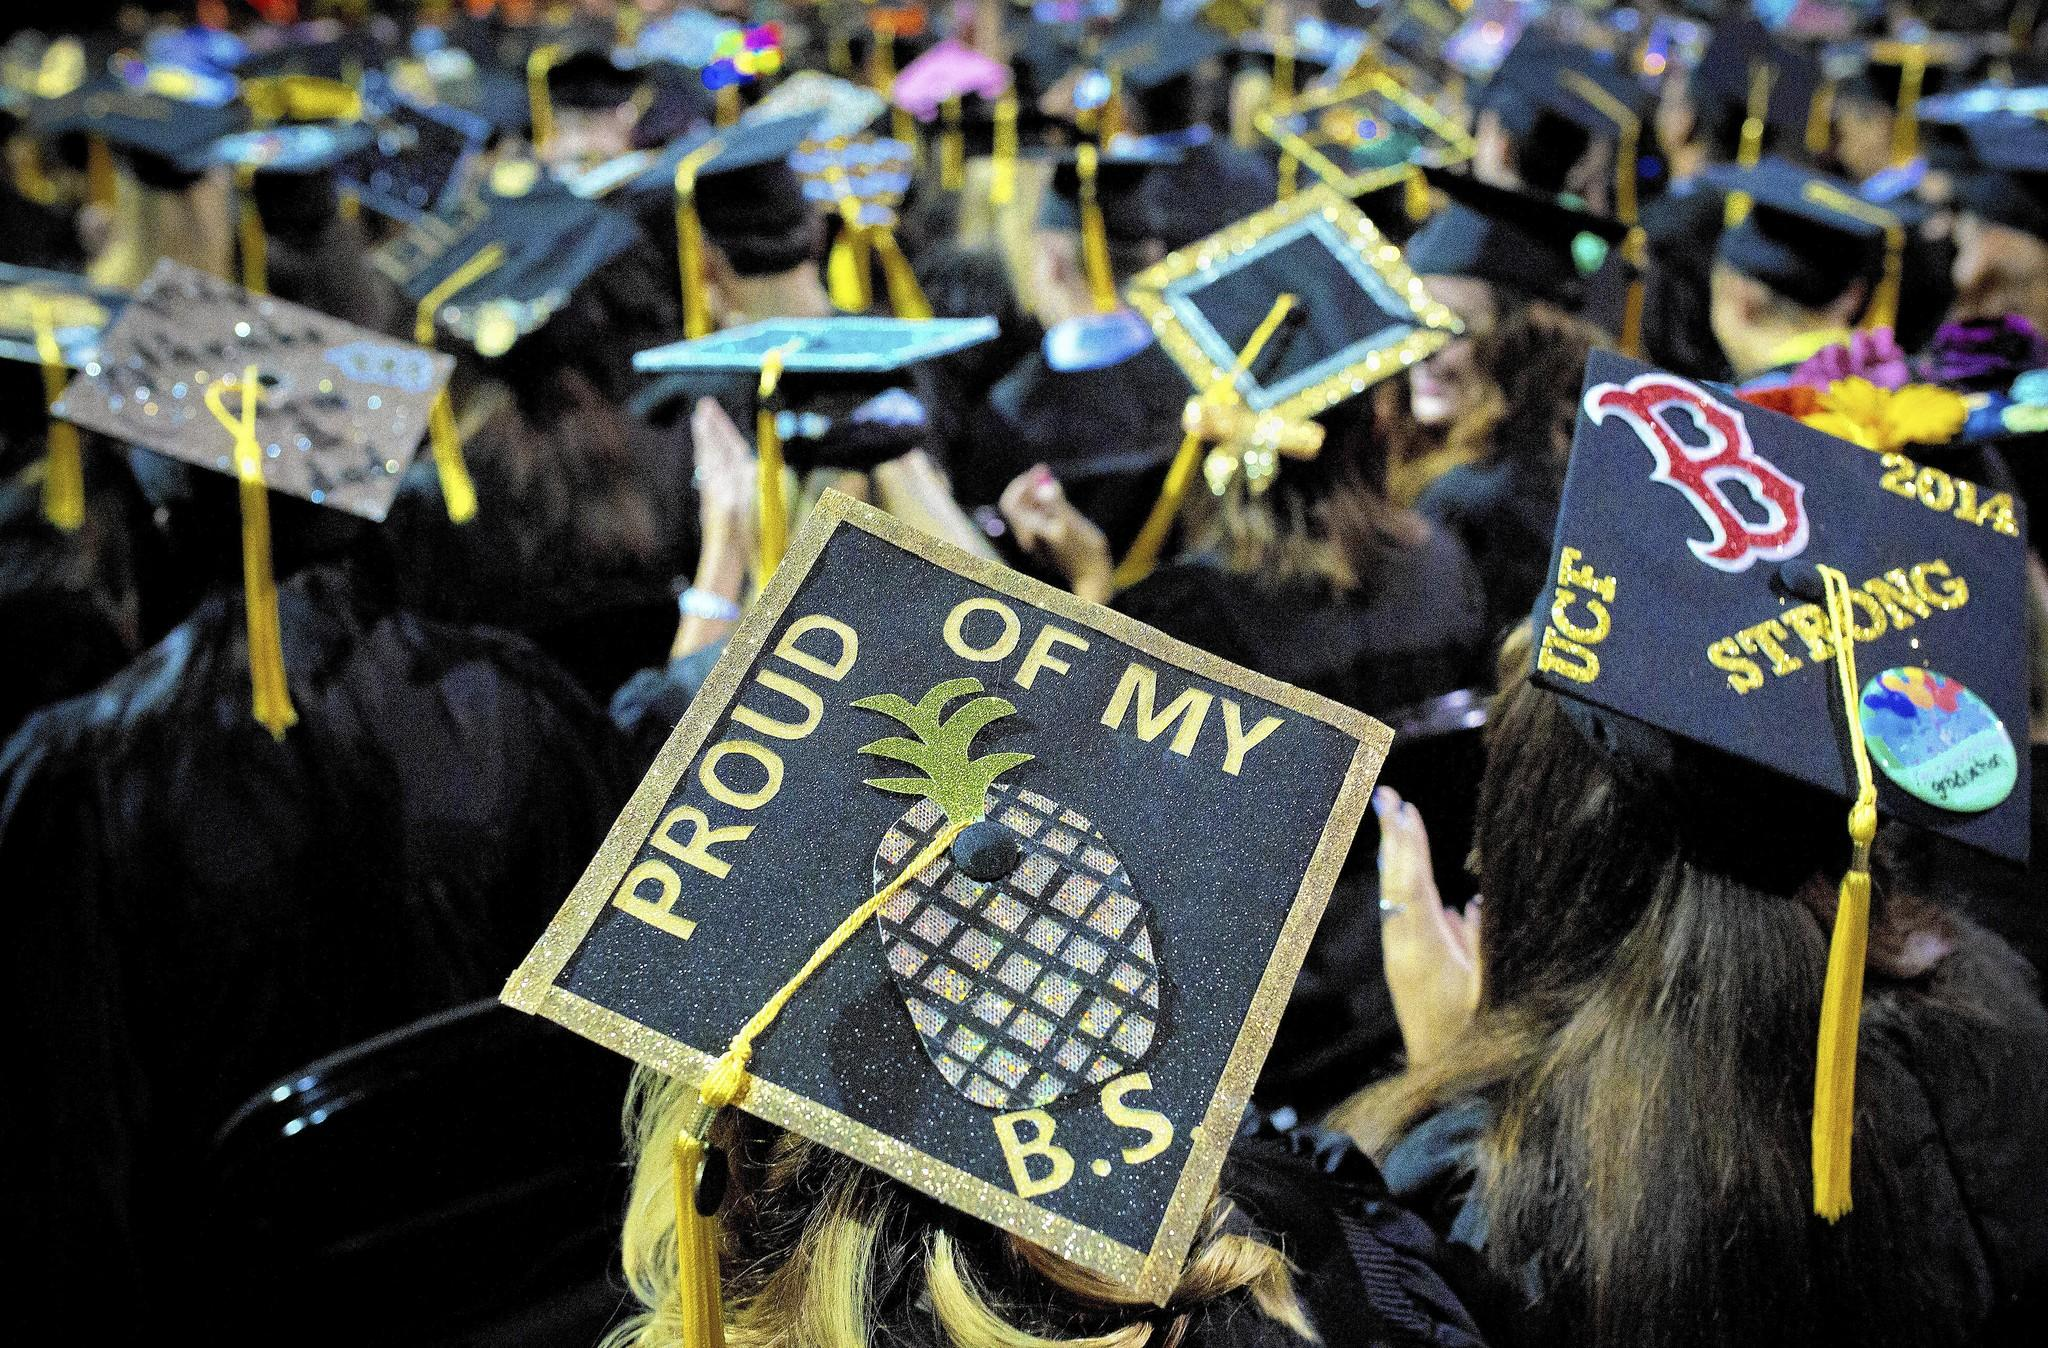 Graduates show off their style with messages on their caps during a UCF commencement ceremony.